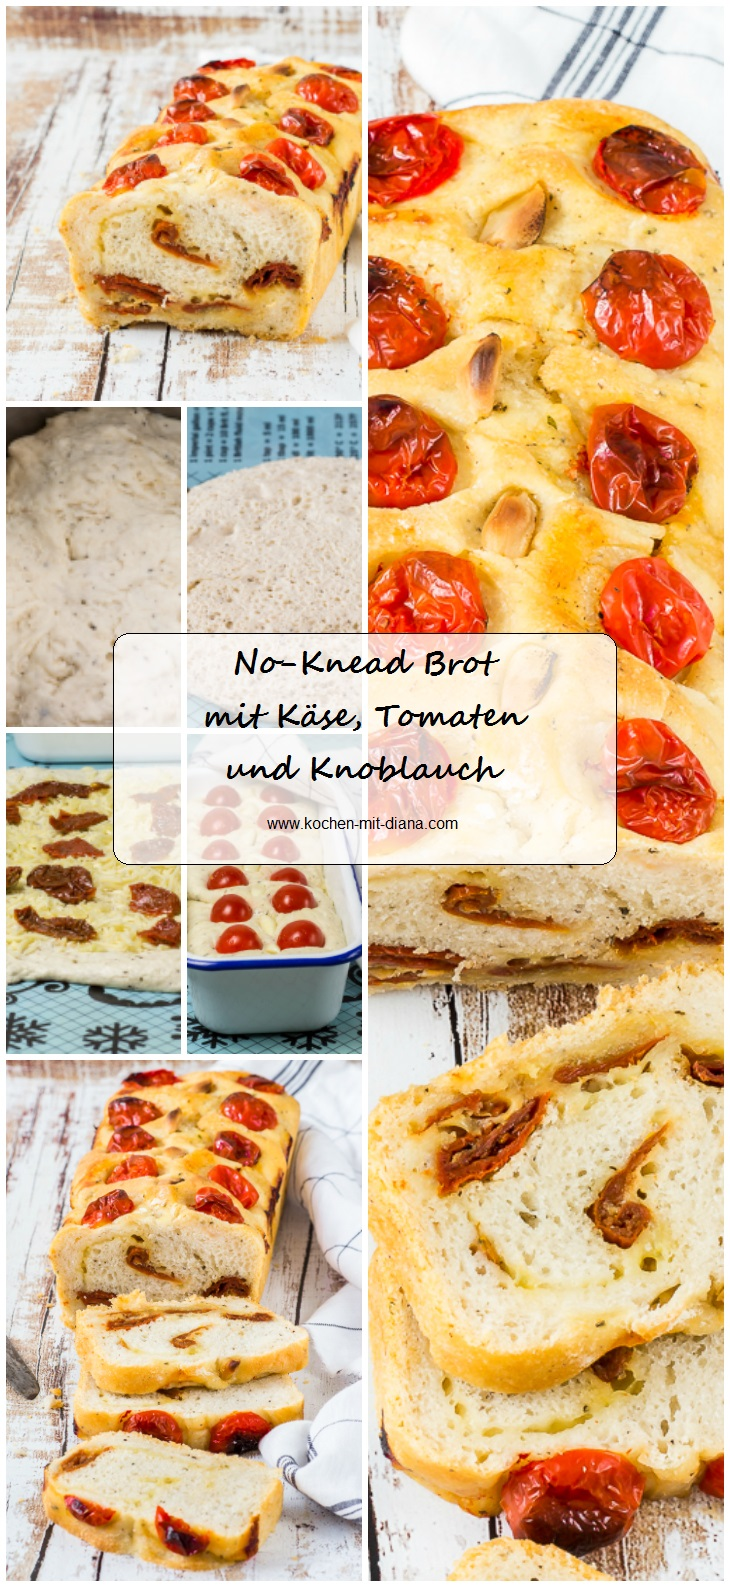 no knead brot mit k se tomaten und knoblauch kochen mit diana. Black Bedroom Furniture Sets. Home Design Ideas